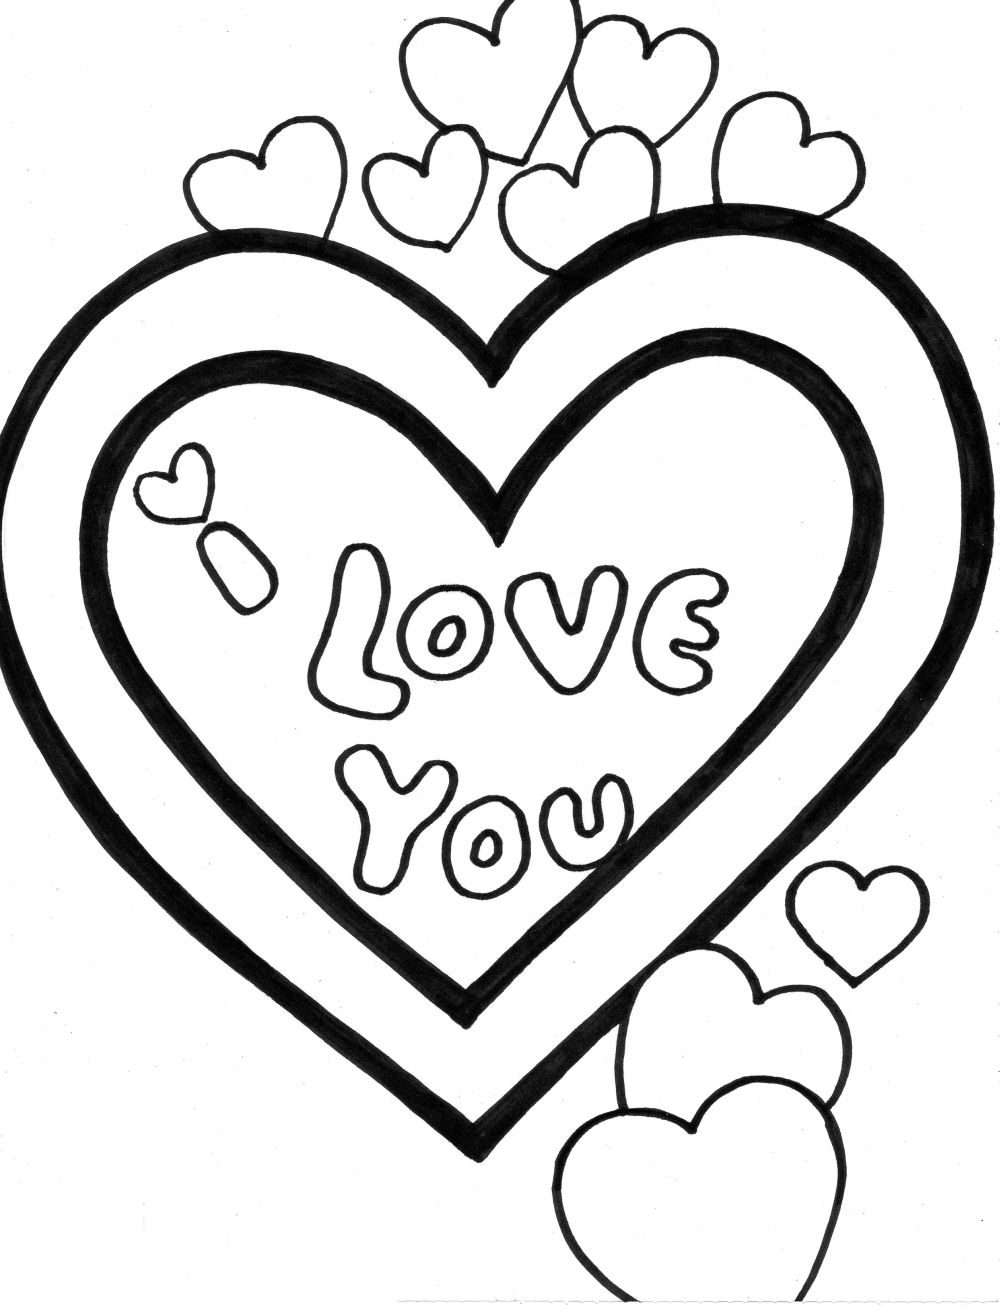 coloring pages of i love you get this free i love you coloring pages for kids yy6l0 pages love coloring i of you